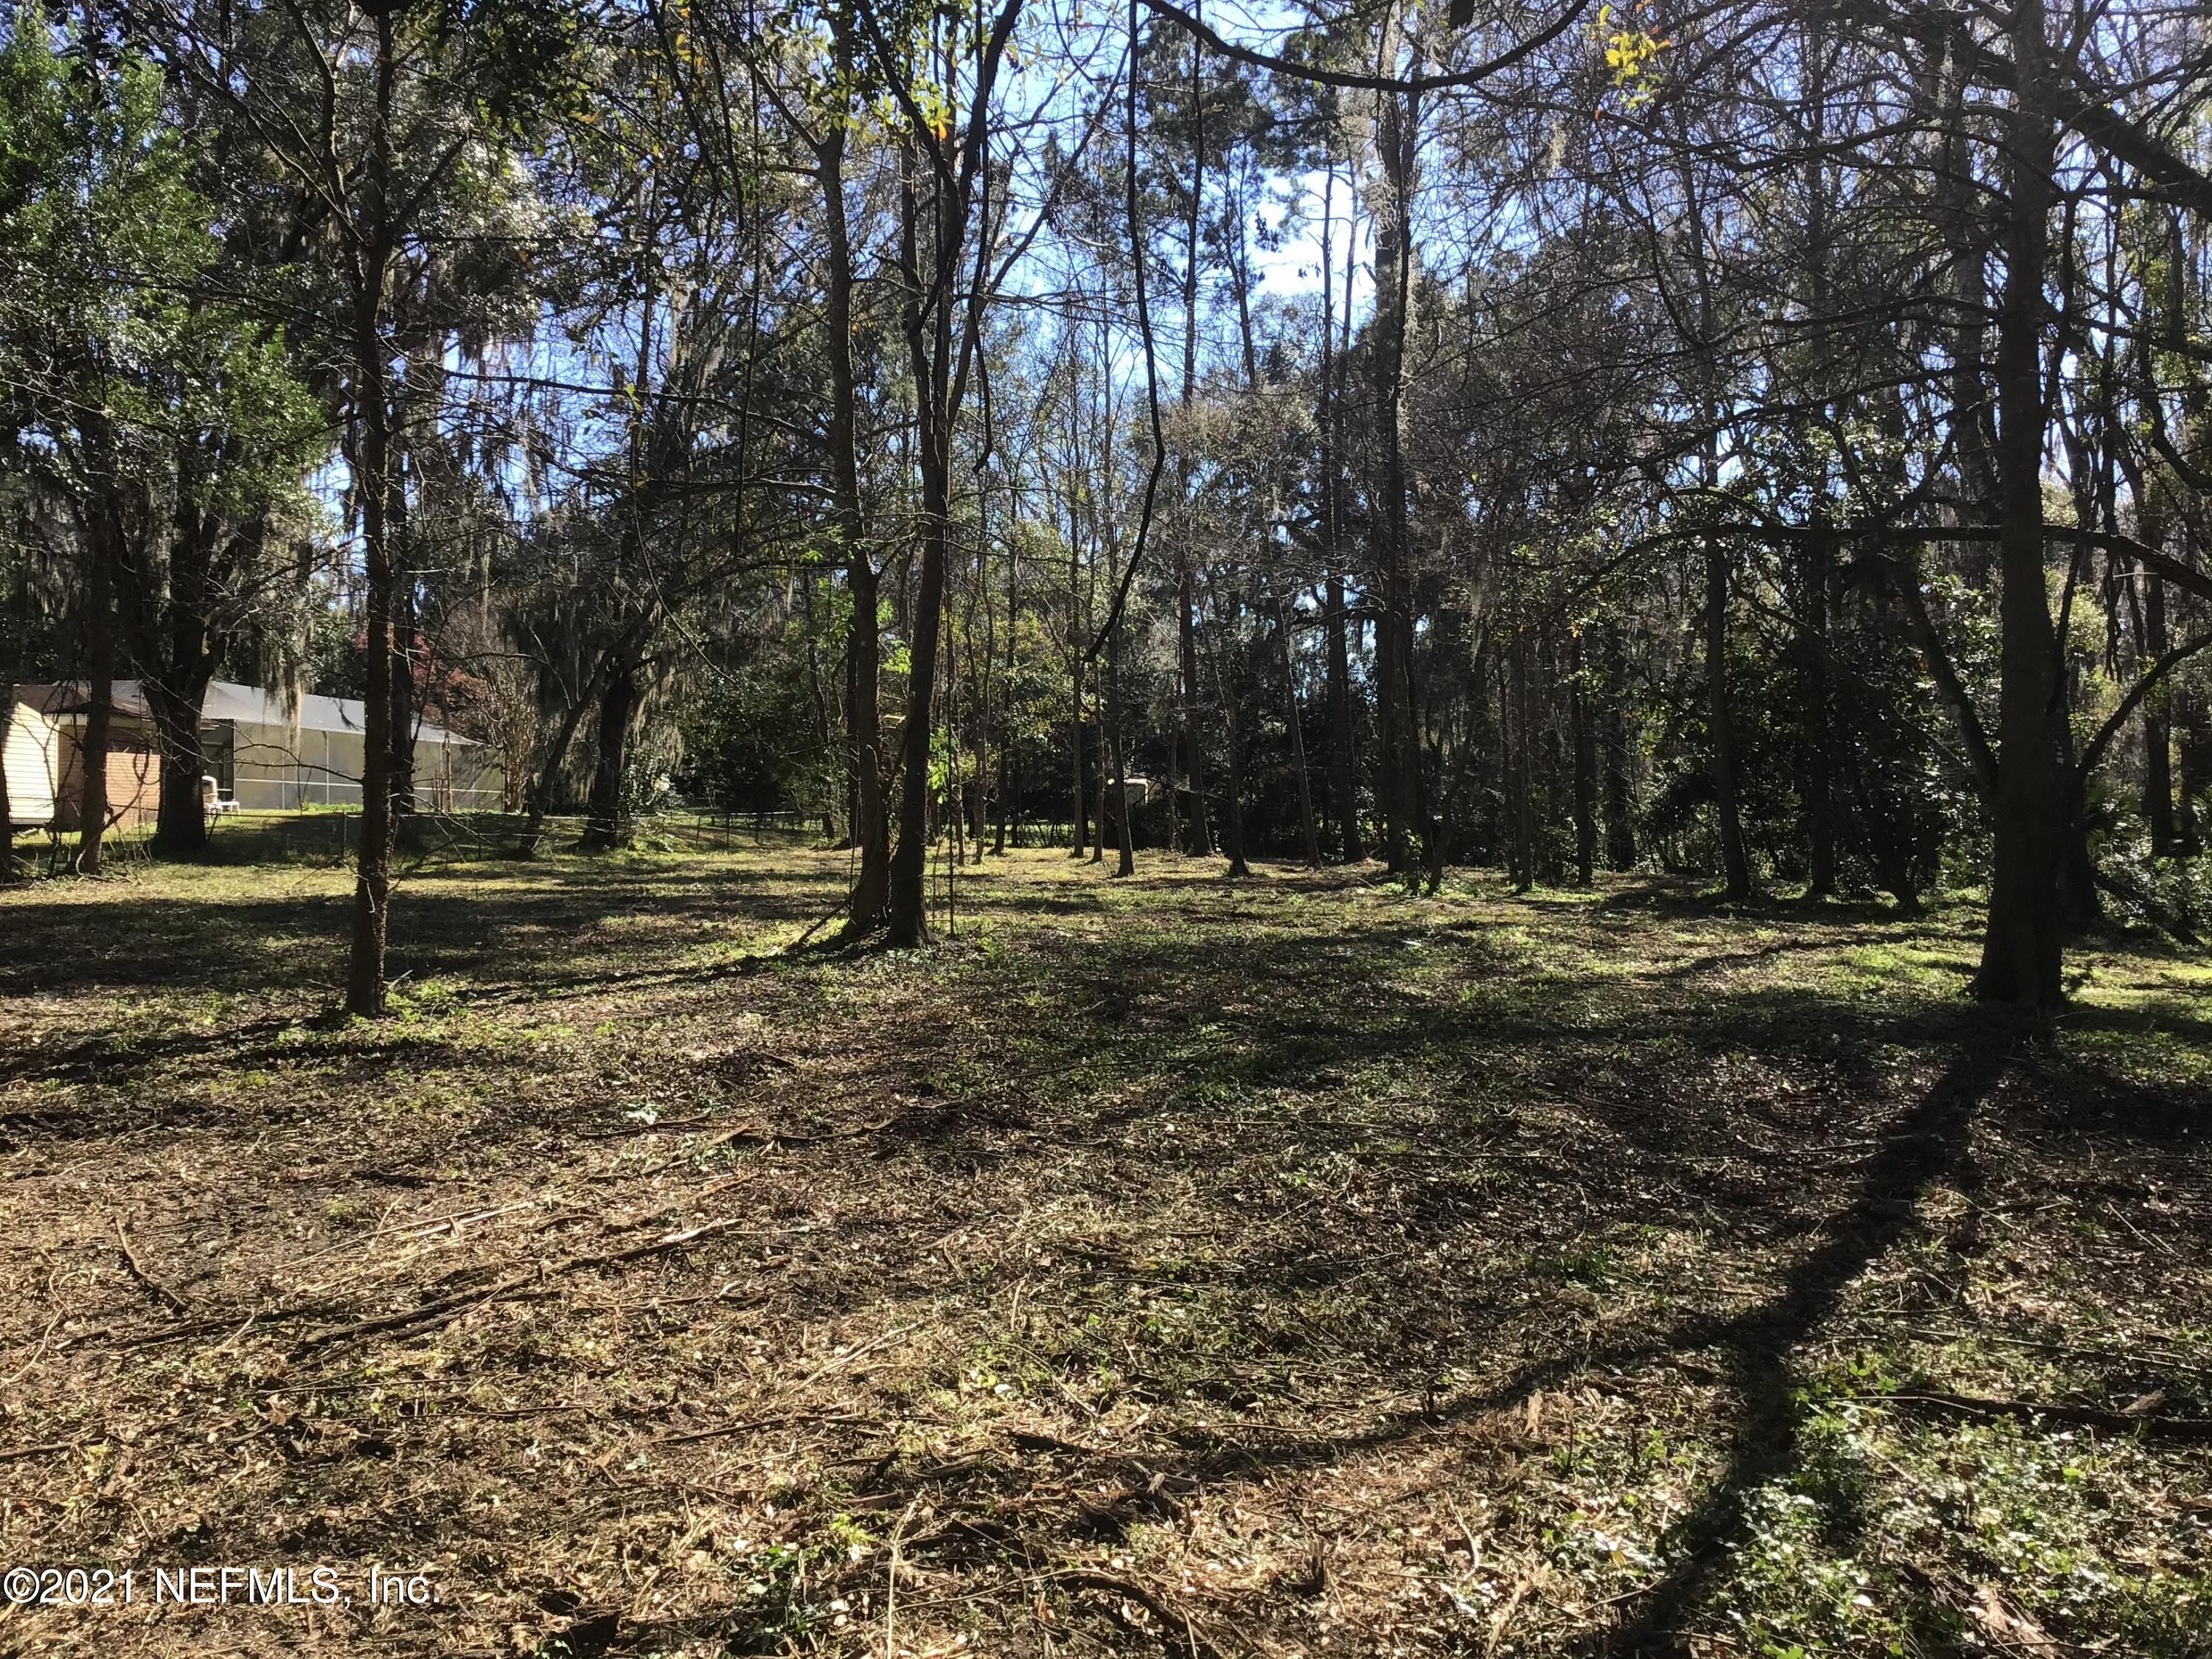 0 COULEE, JACKSONVILLE, FLORIDA 32210, ,Vacant land,For sale,COULEE,1091189